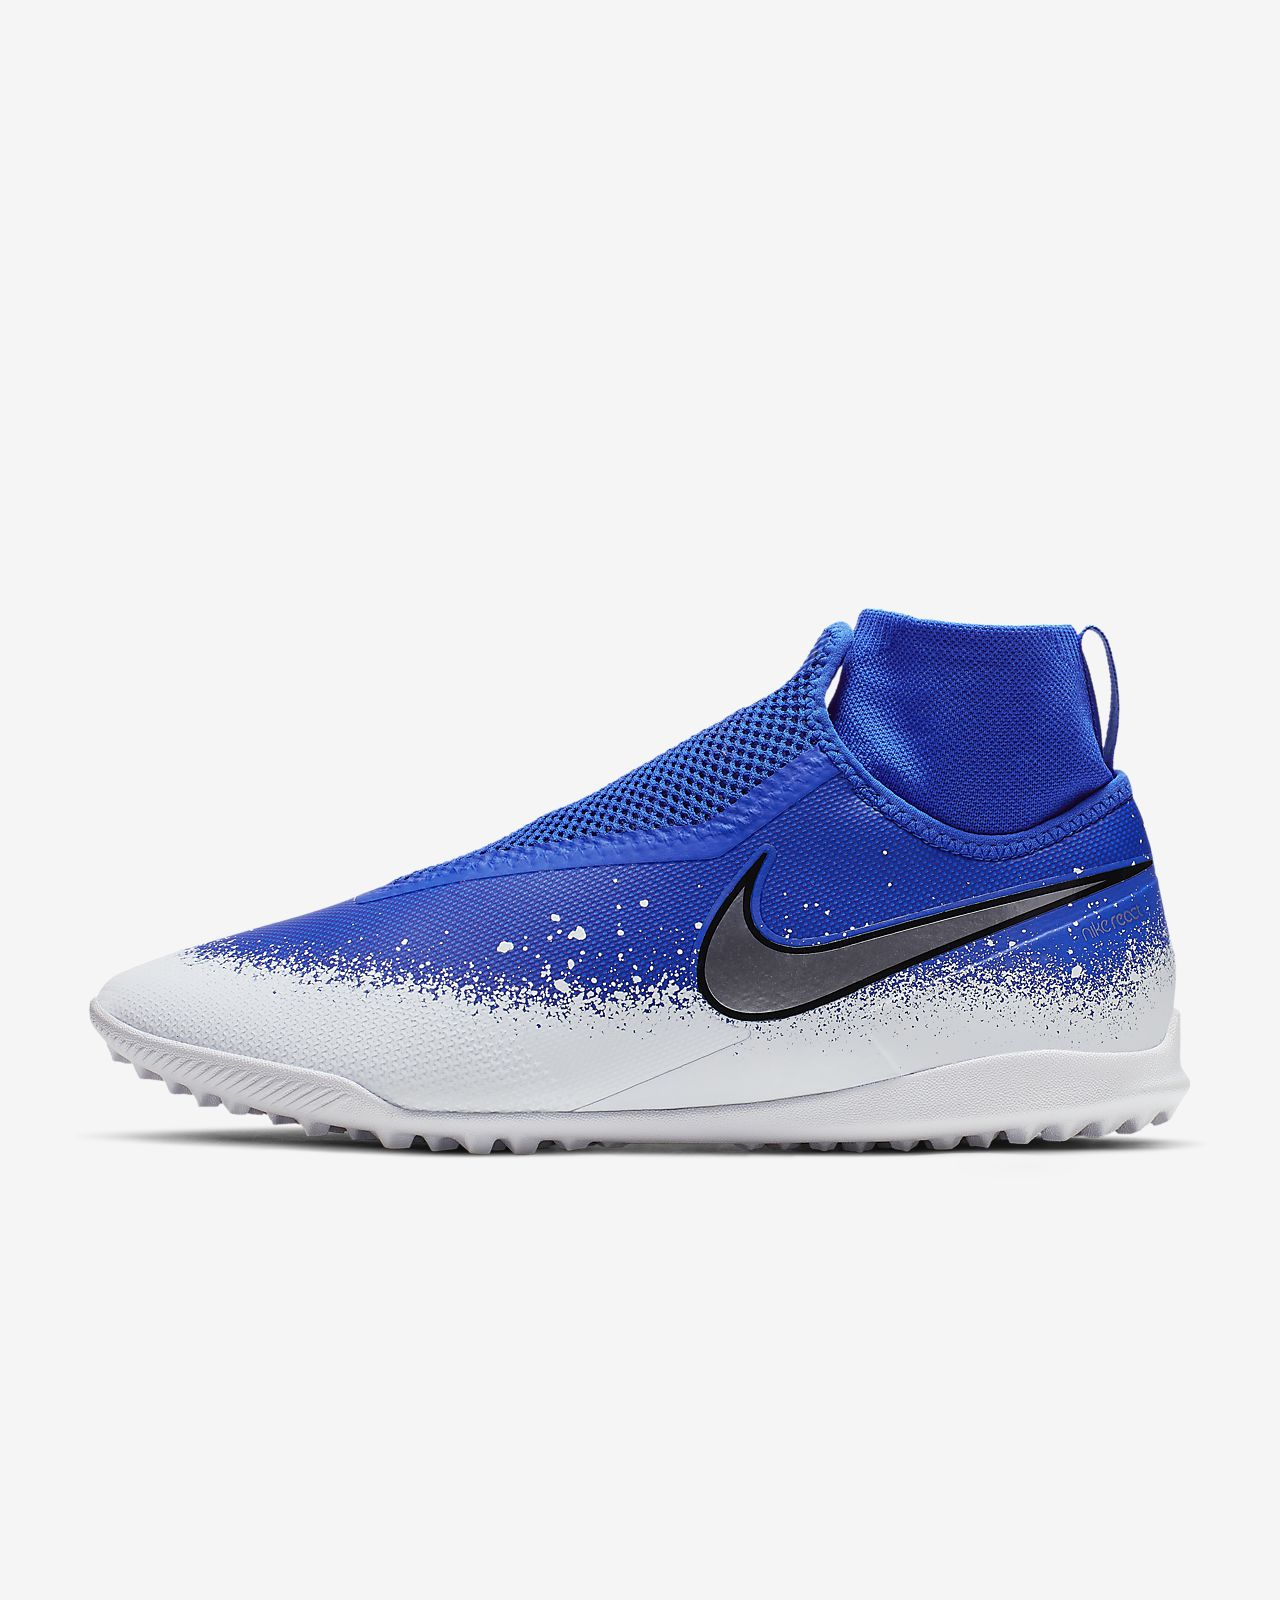 fb0bd9489 Nike React Phantom Vision Pro Dynamic Fit TF Turf Football Shoe ...